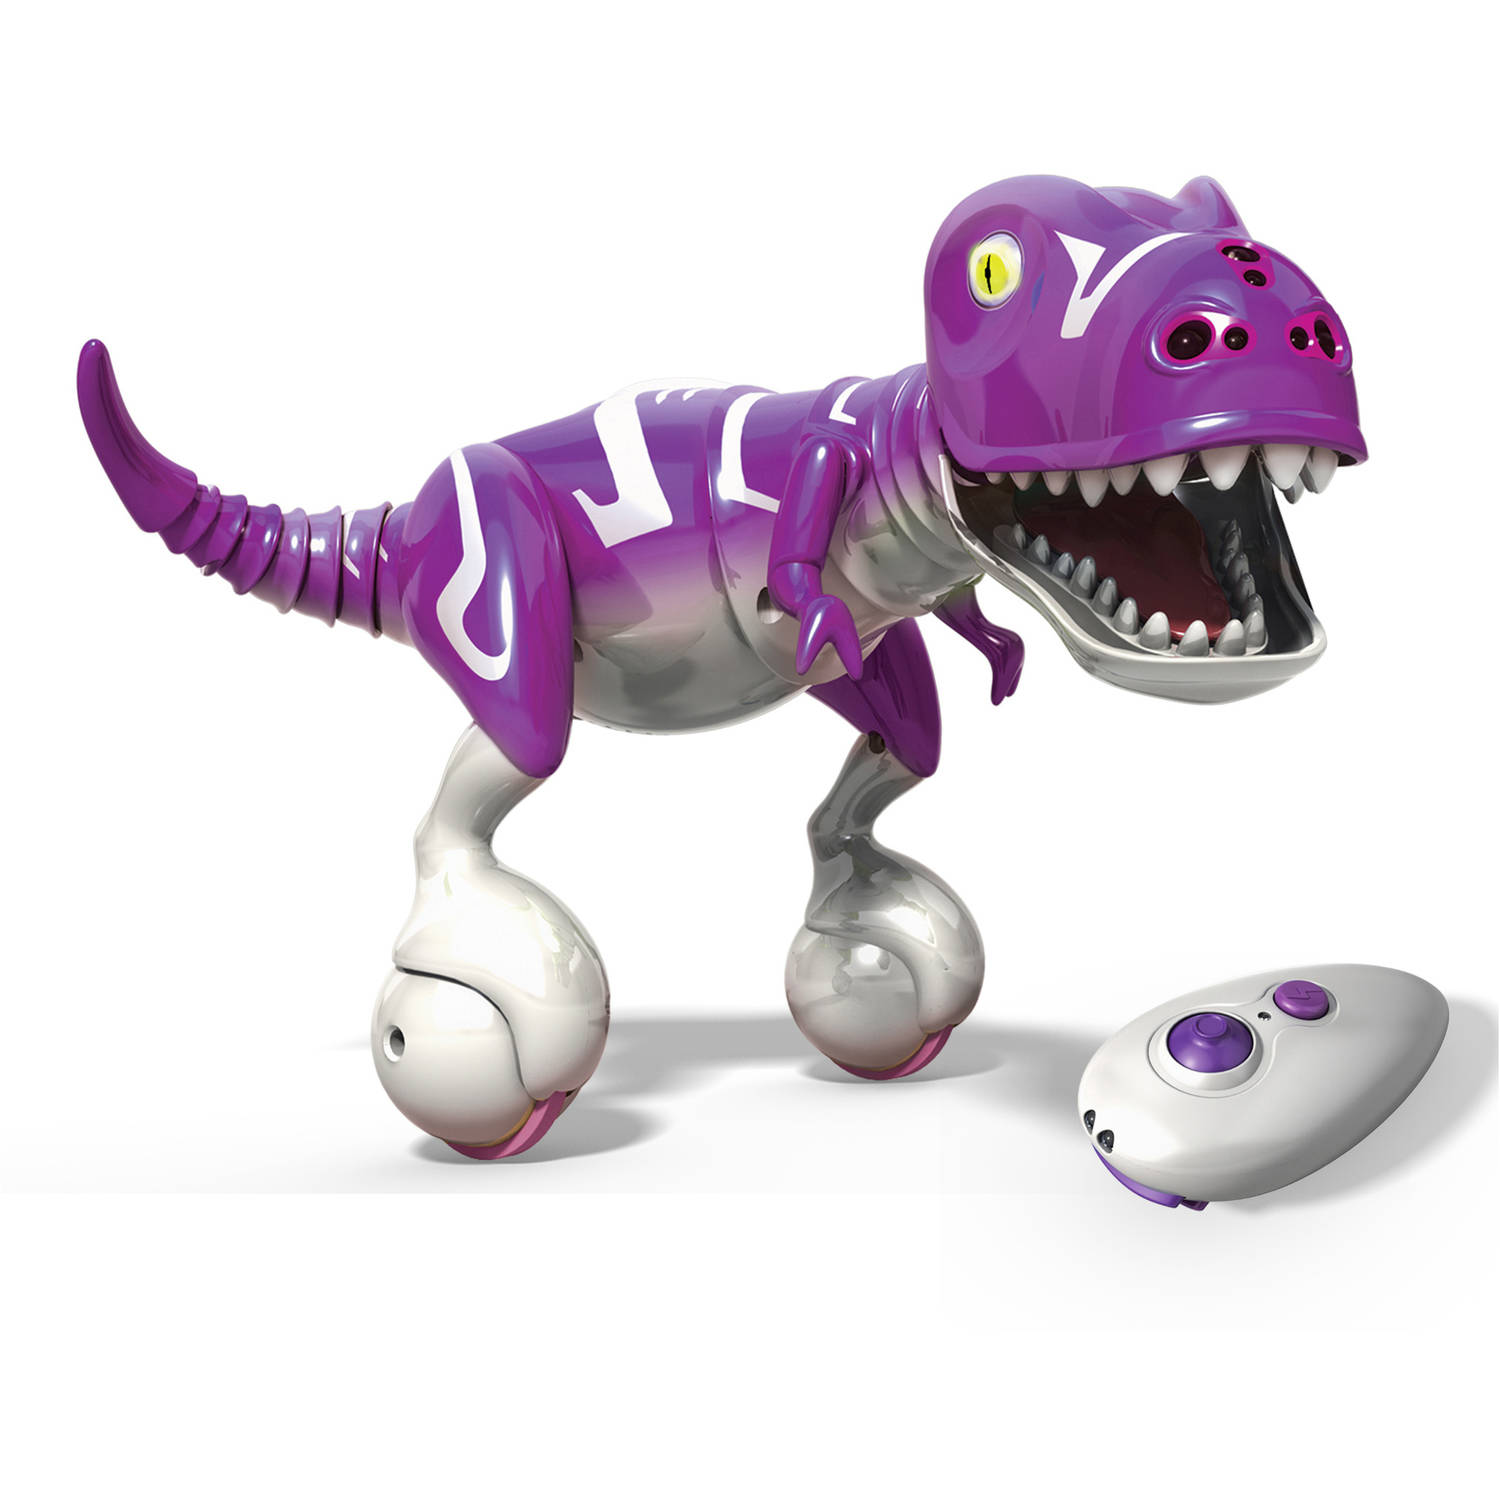 Zoomer Interactive Dino, Robotic Talking & Walking Dinosa...